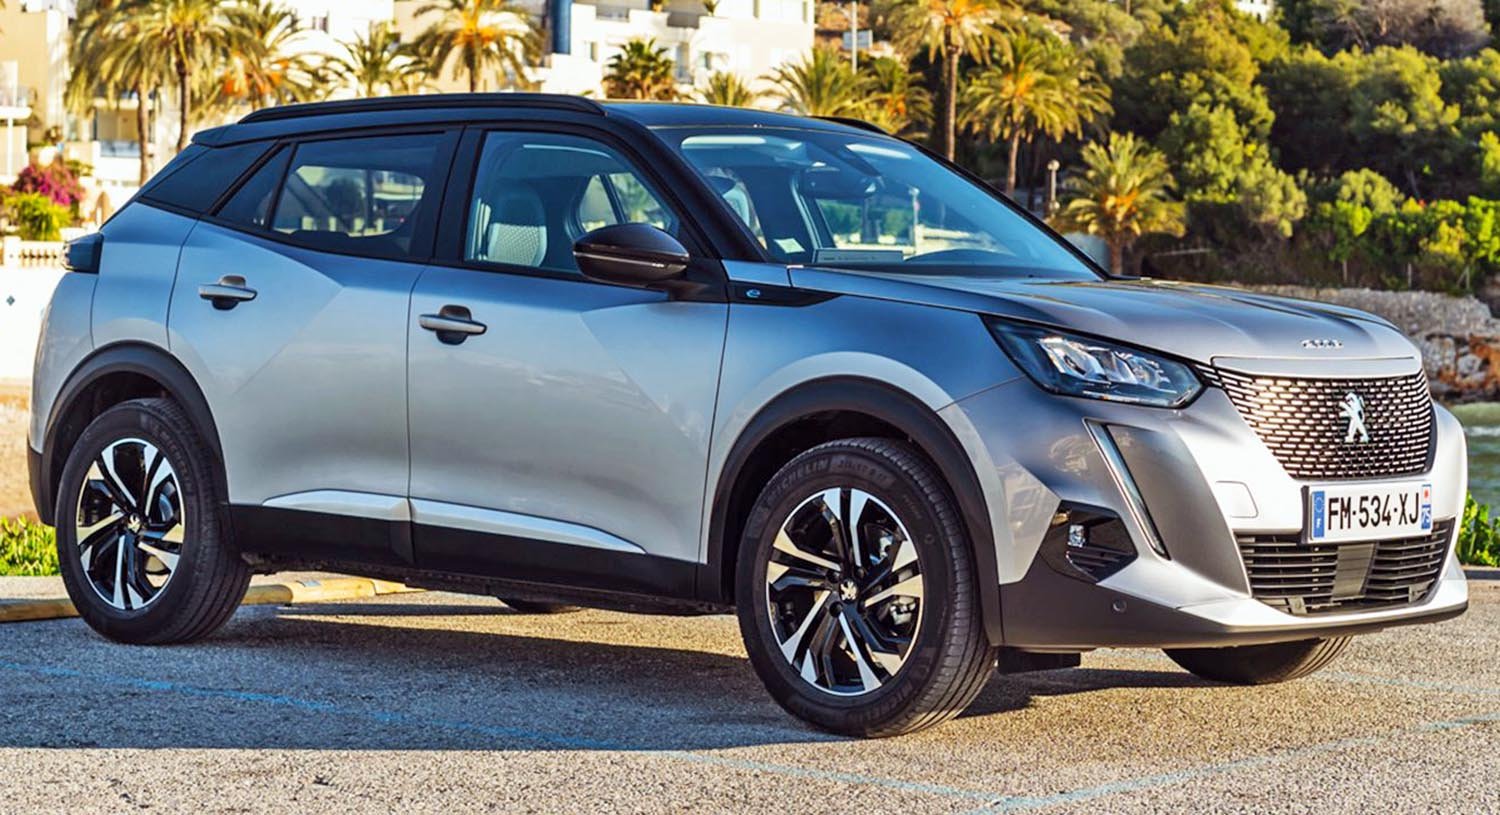 Peugeot Introduces The All-New 2008 SUV – Escape The Ordinary